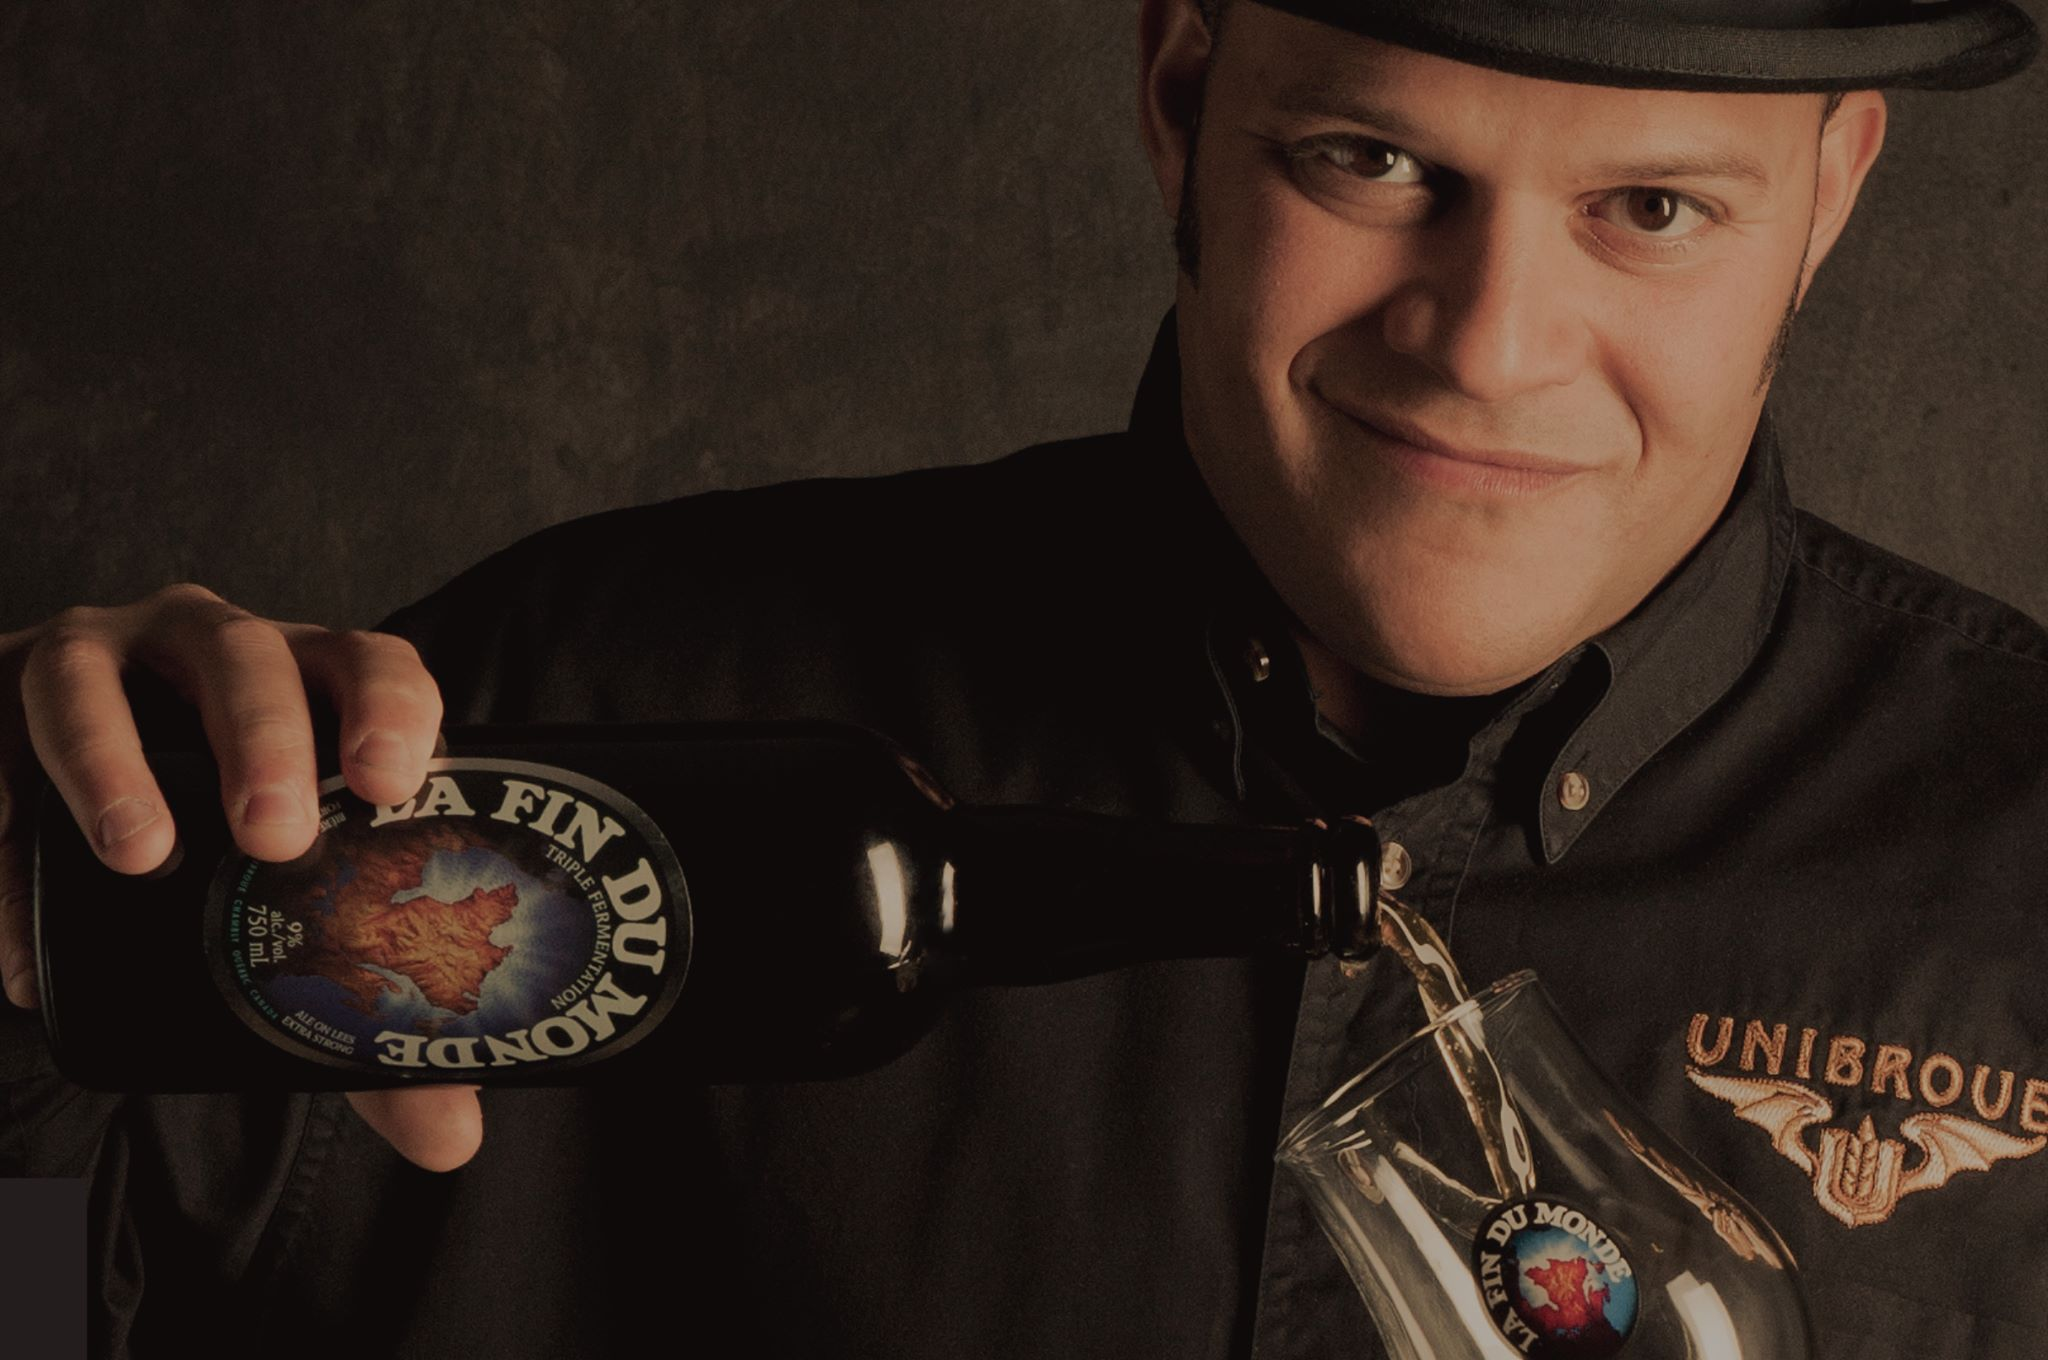 Unibroue_master brewer_jerry vietz